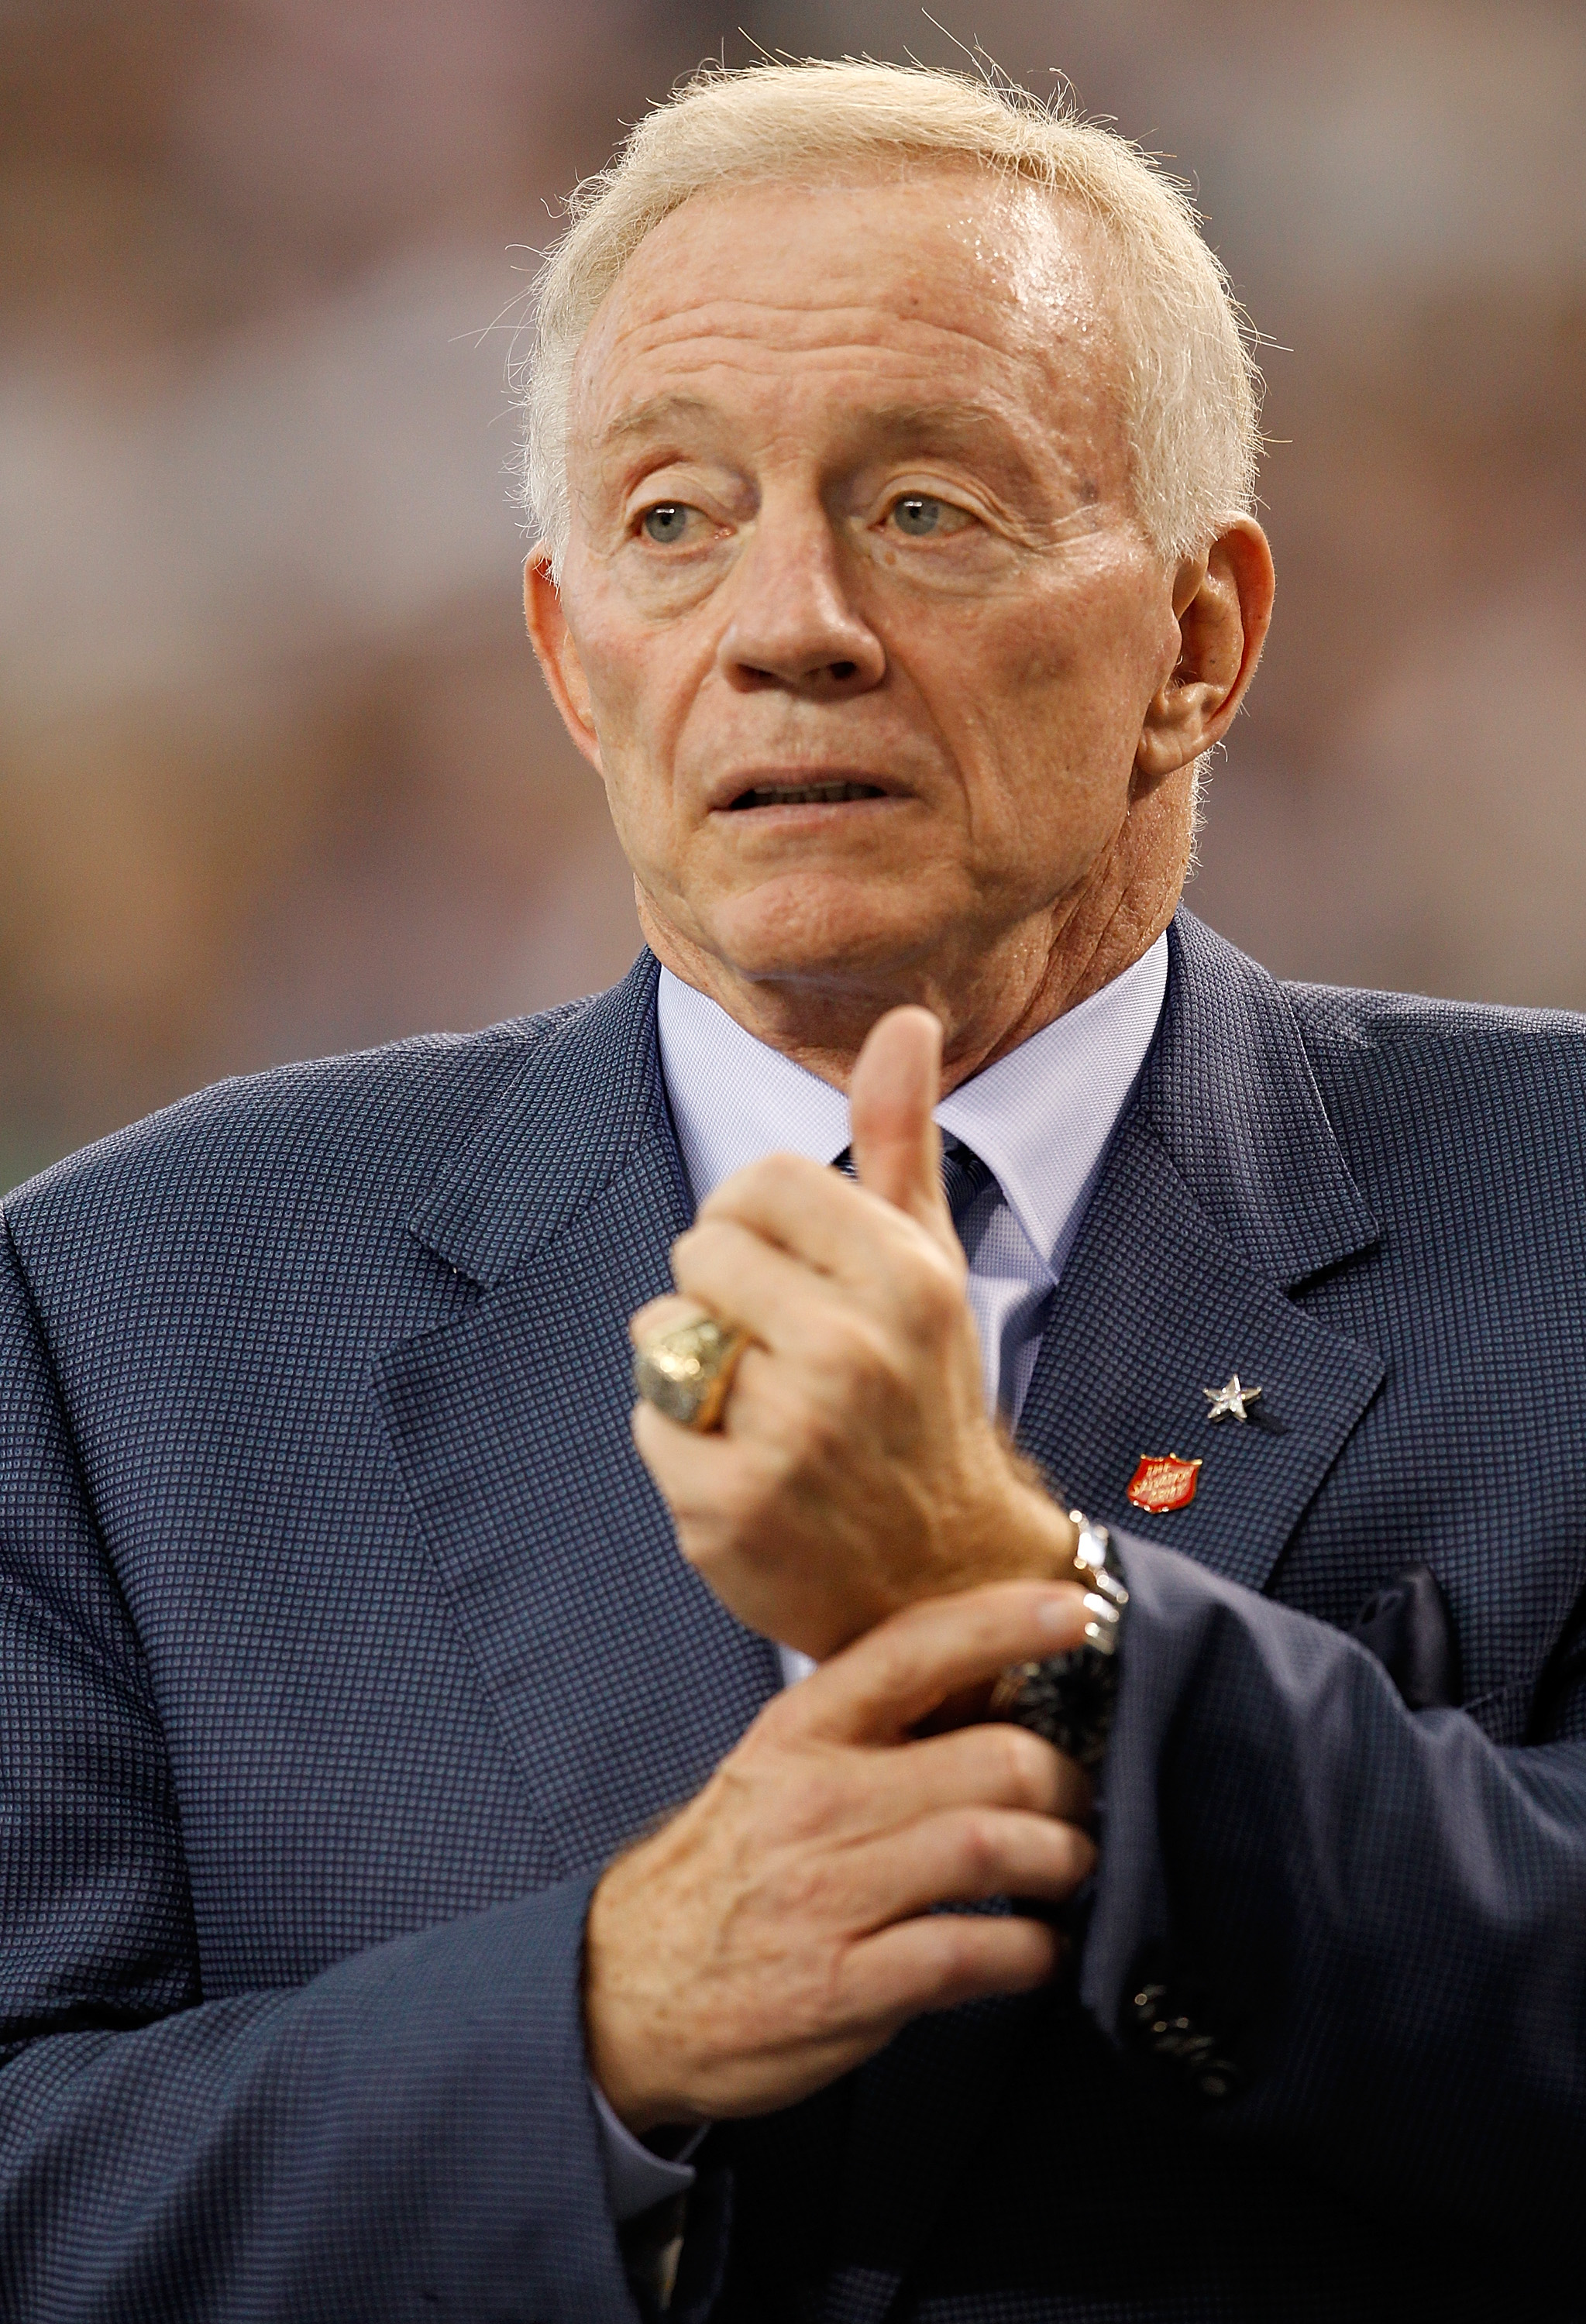 Cowboys owner Jerry Jones hasn't had much to smile about this season ... but wait 'till next year.